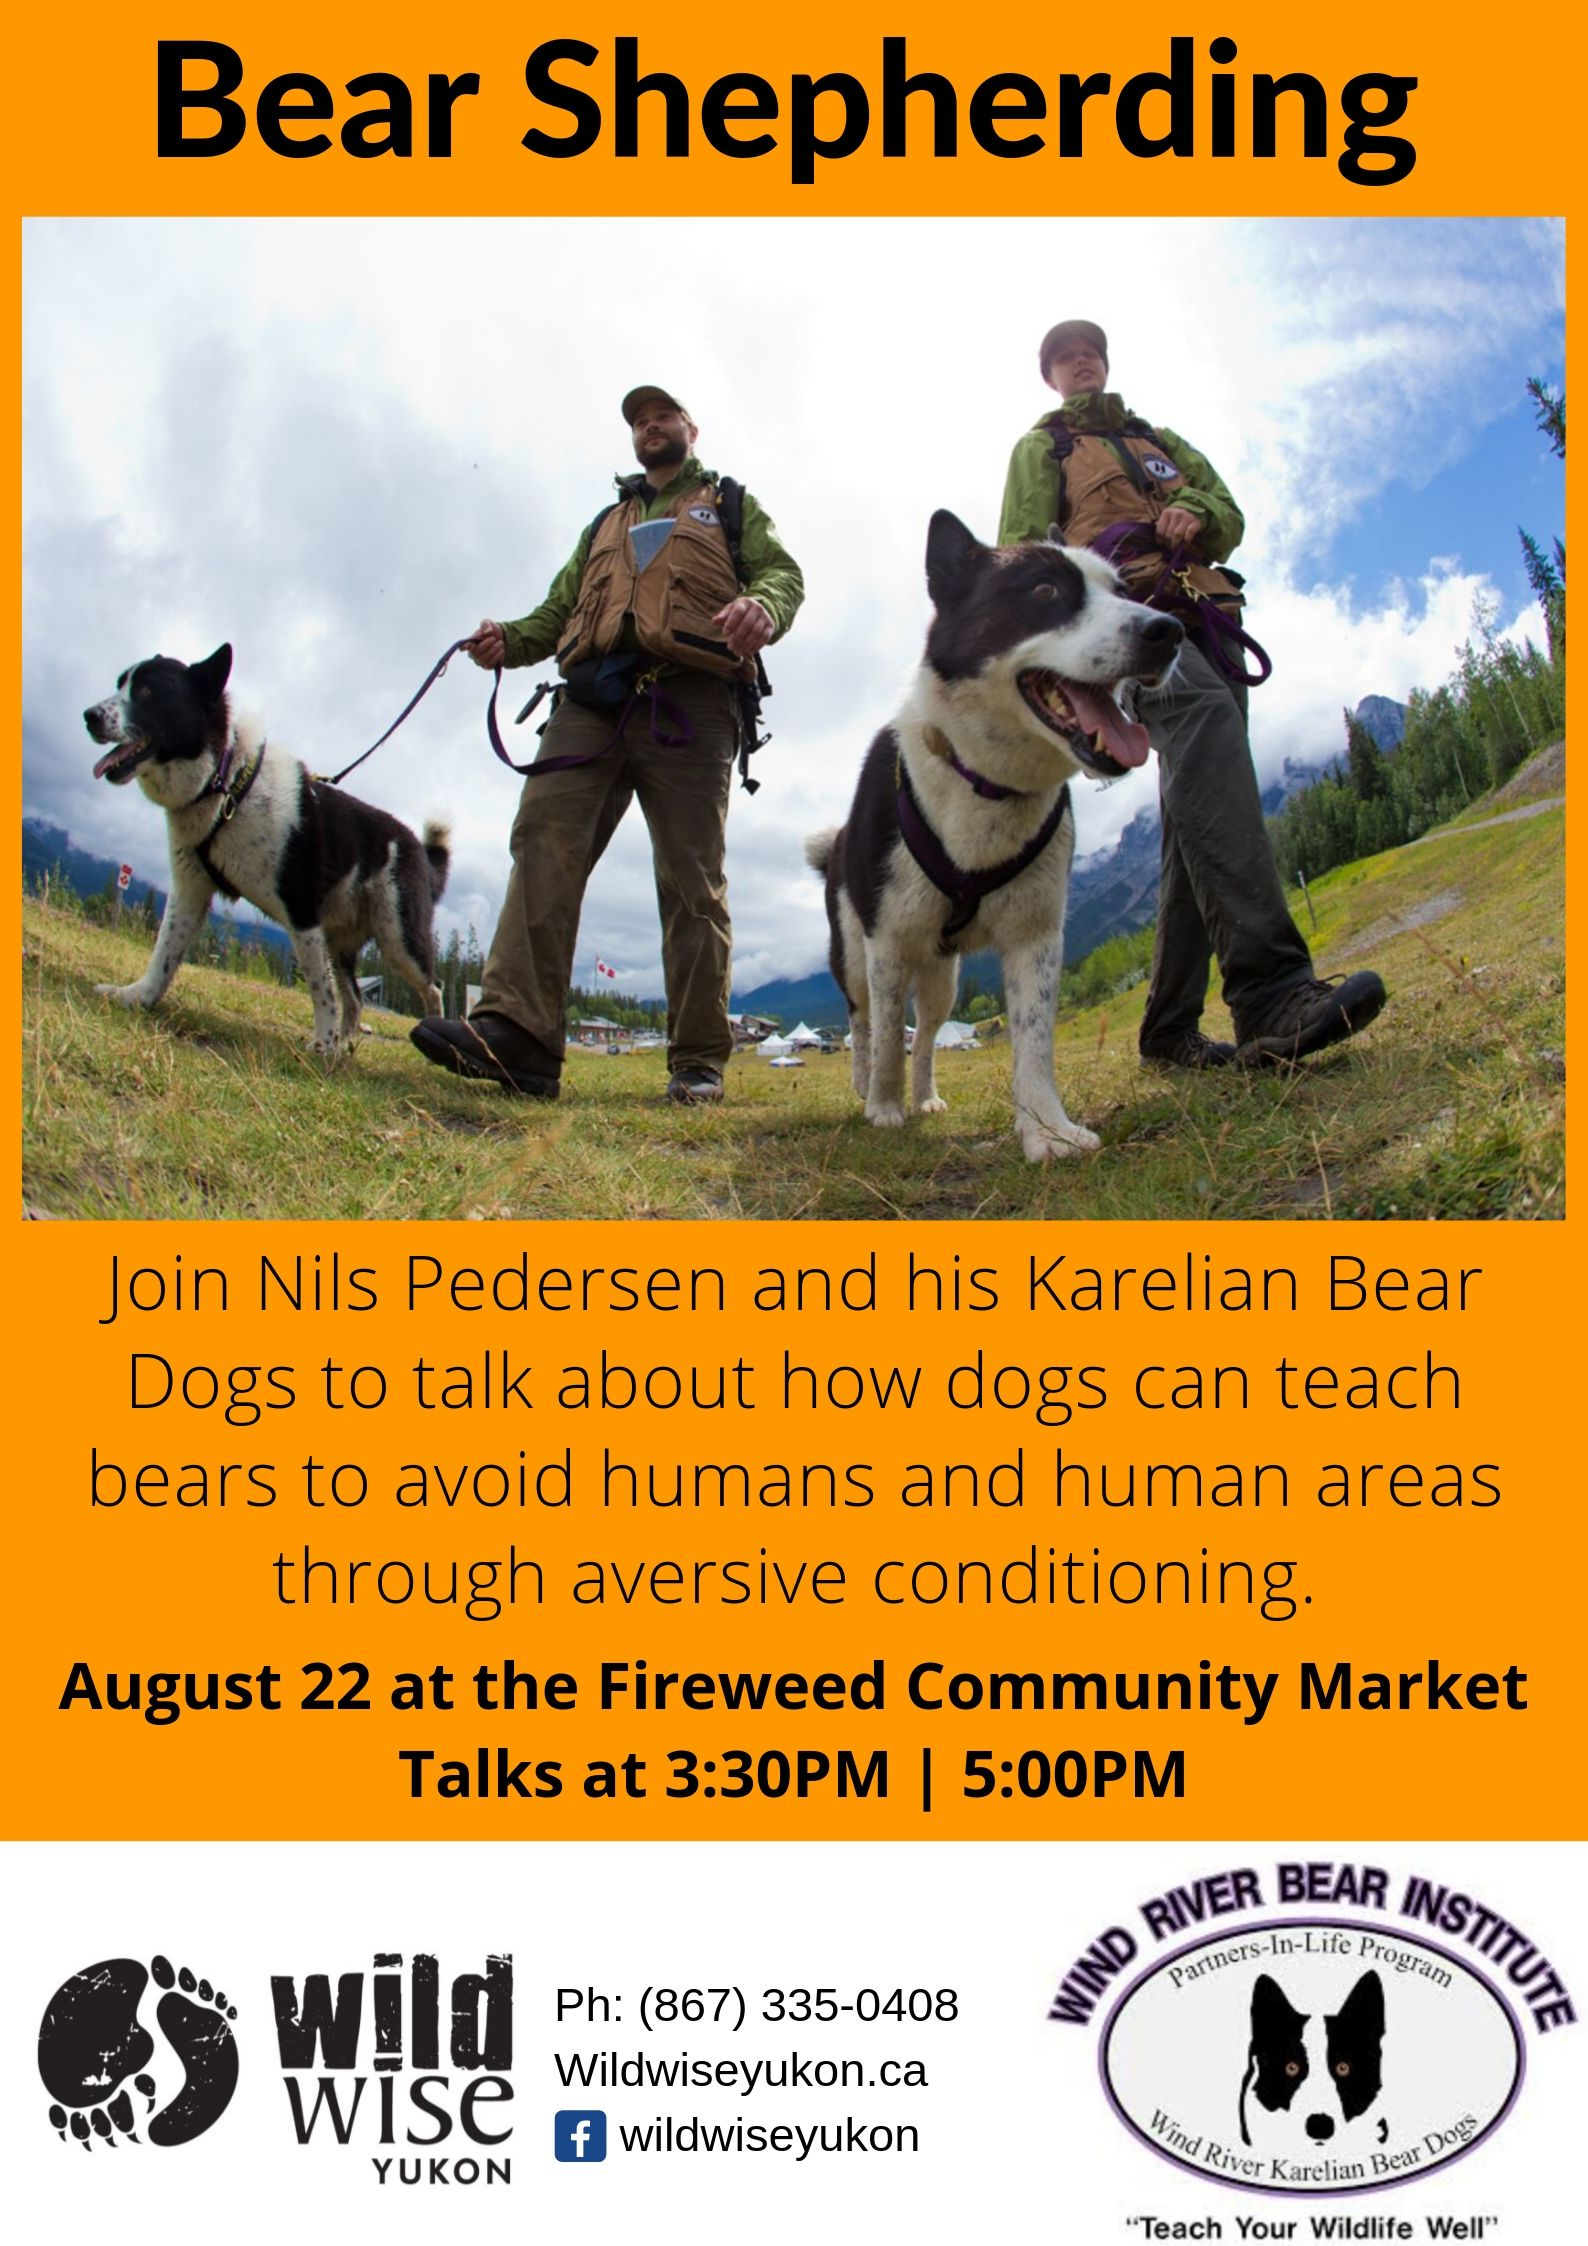 Want to meet a Karelian bear dog? - KBDs are not your average dog! They are trained to find and move bears to areas that are safer for bears to be, but that's not all. Come and say hello, find out how they are trained, what they do and how they differ from your pet dogs. Presentations at 3:30 and 5pm, Auigust 22ndFireweed Market